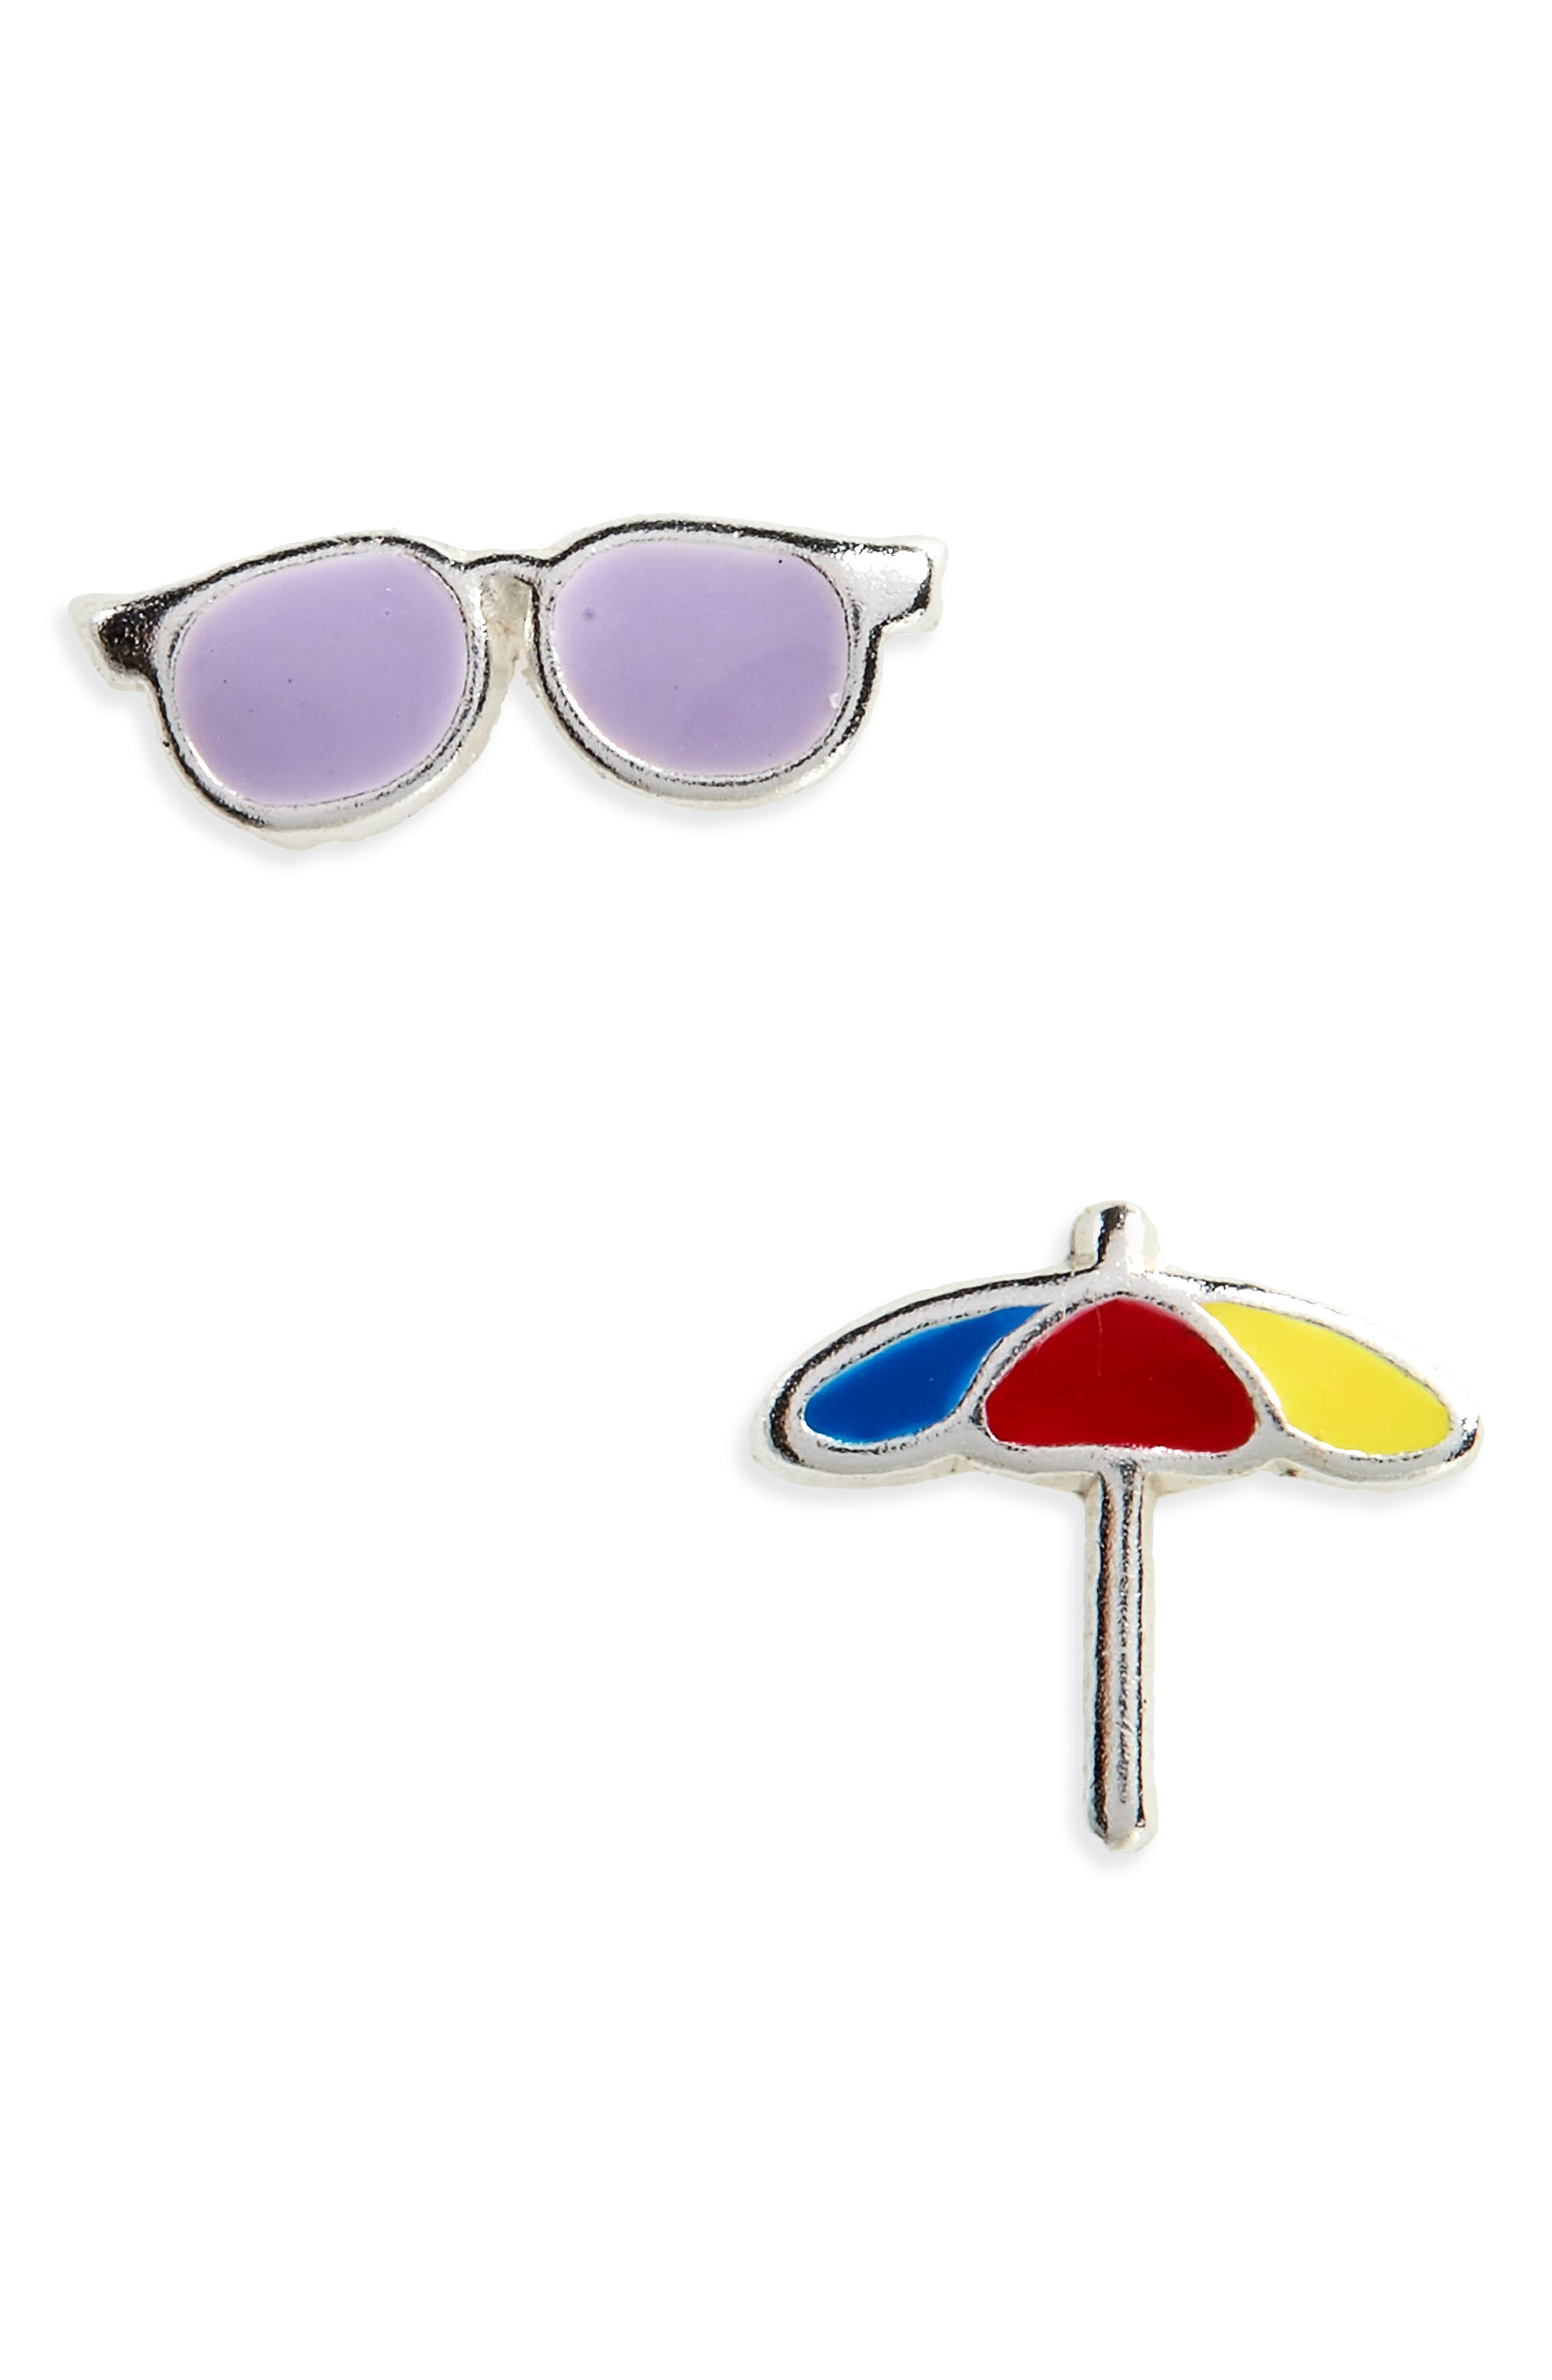 Sunglasses & Beach Umbrella Sterling Silver Stud Earrings,                             Main thumbnail 1, color,                             Yellow/ Red/ Green